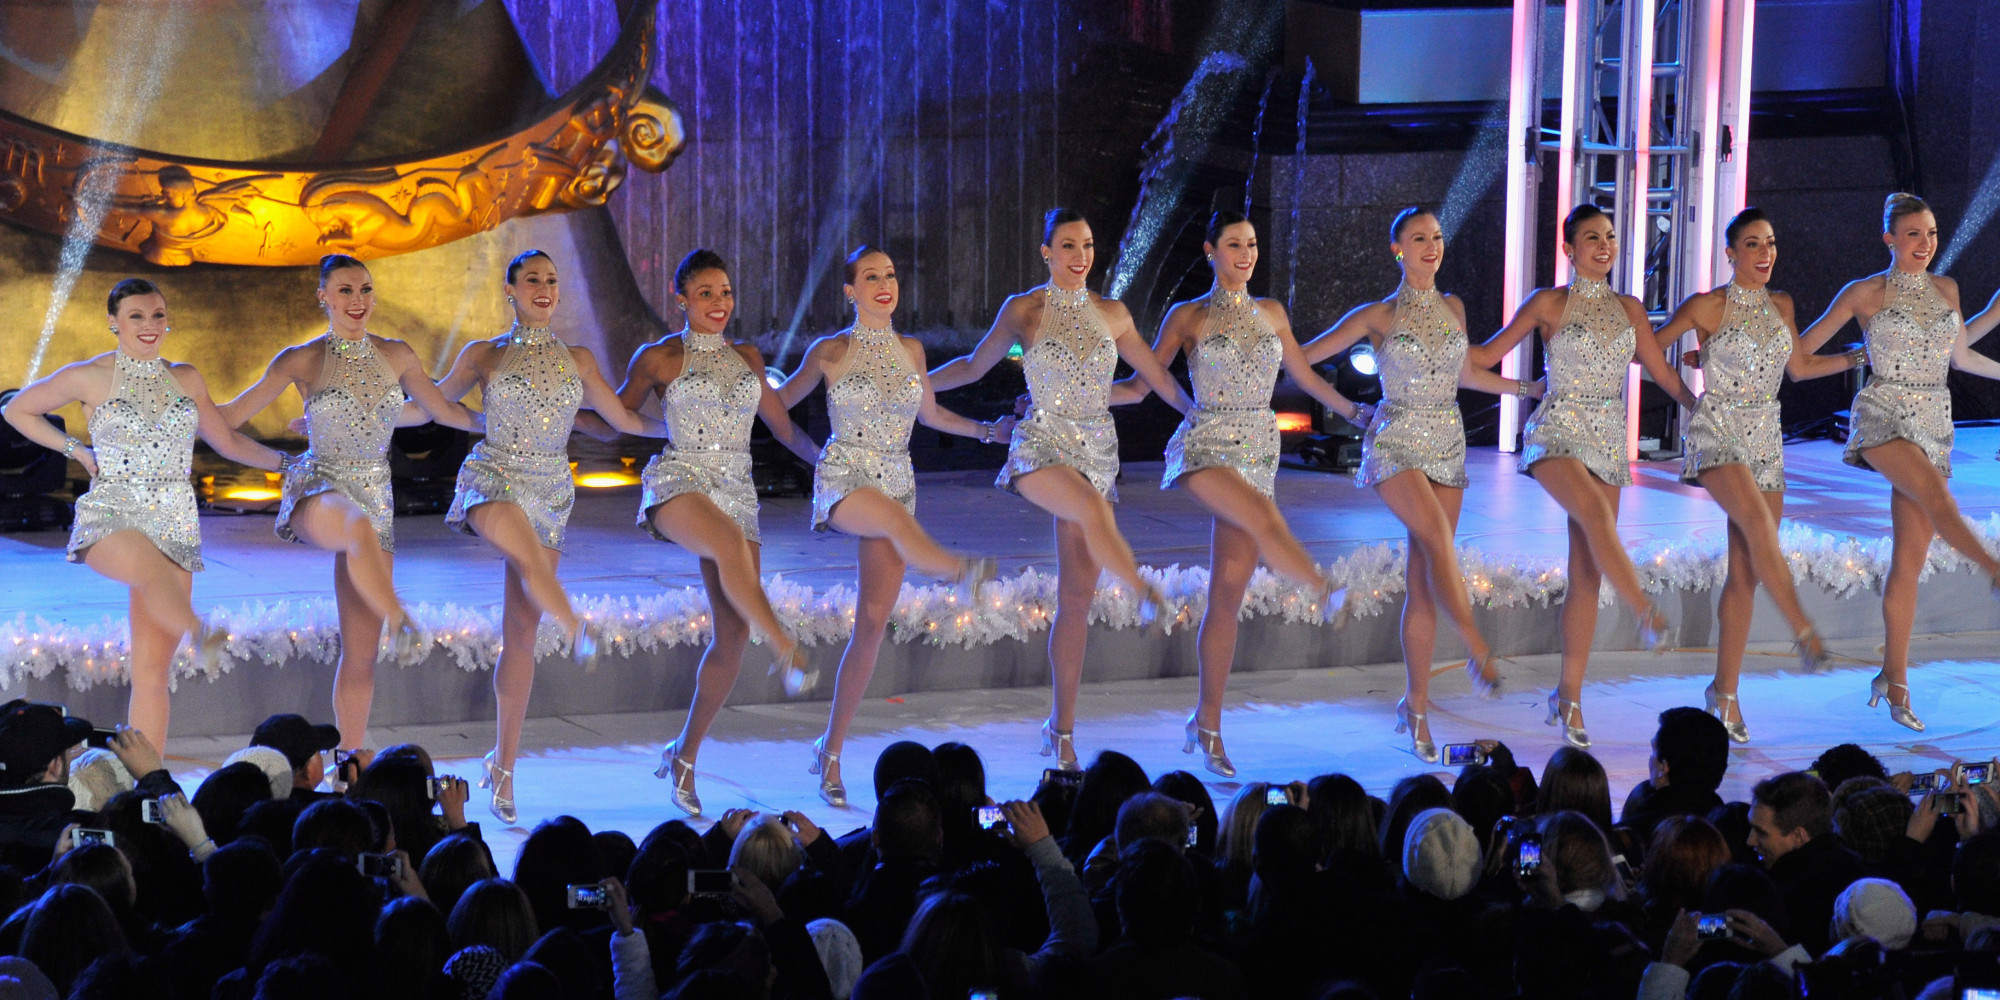 Rockettes Reveal Unlikely Surprise They Do Their Own